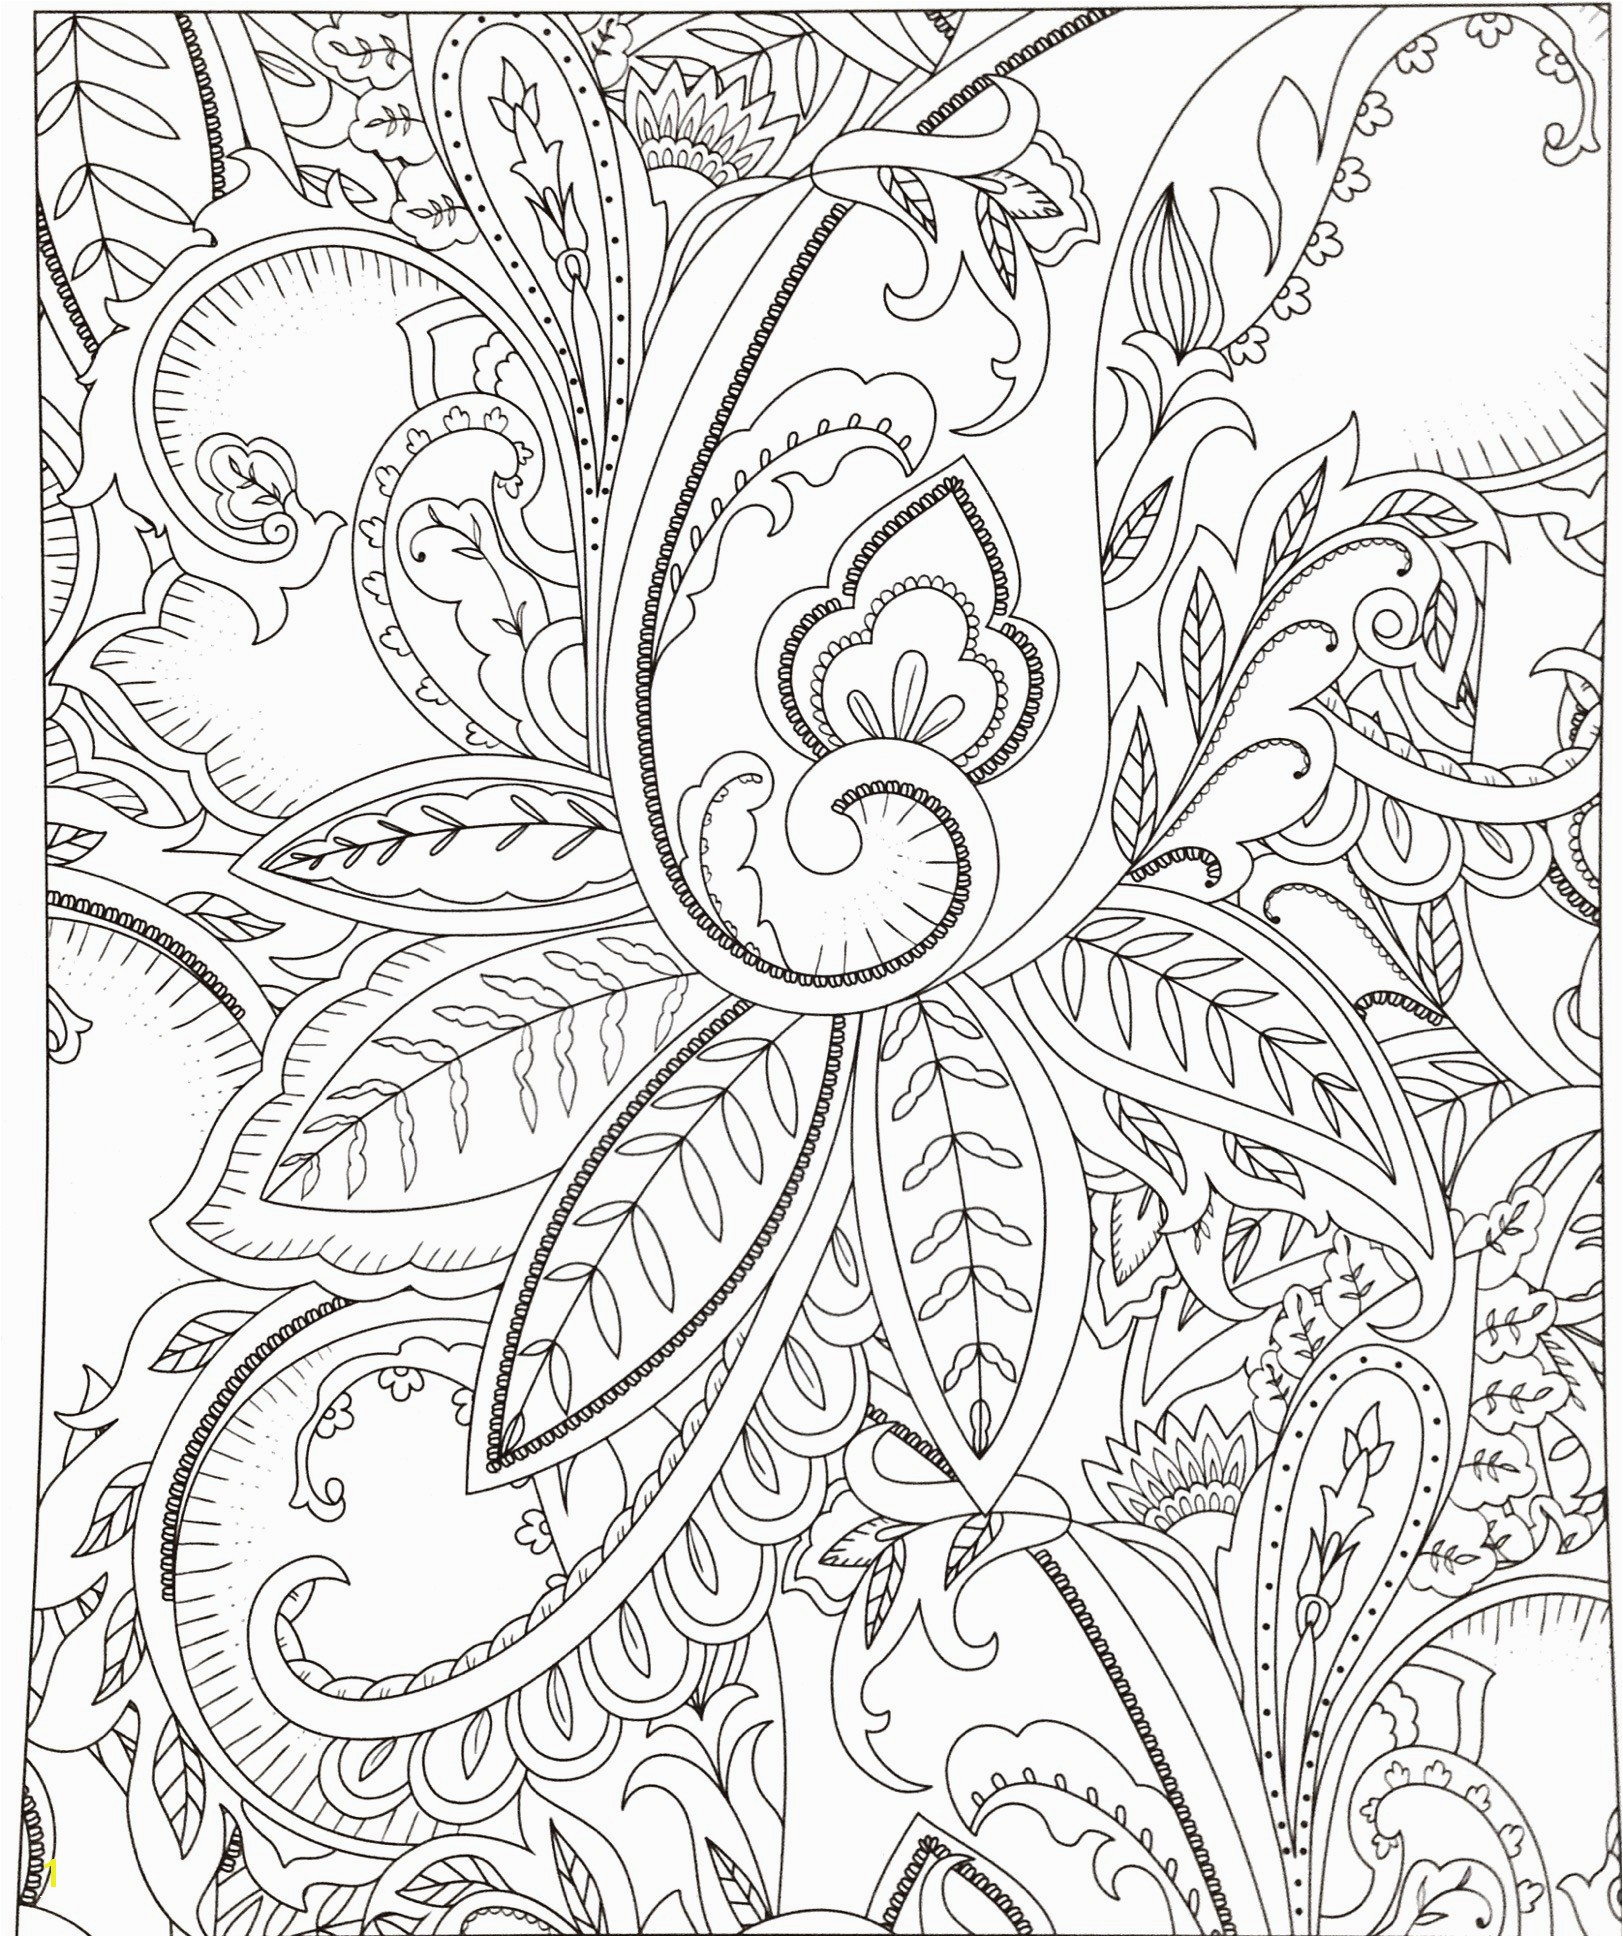 Pixelmon Coloring Pages Pokemon Coloring Pages Elegant Pokemon Coloring Pages Printable